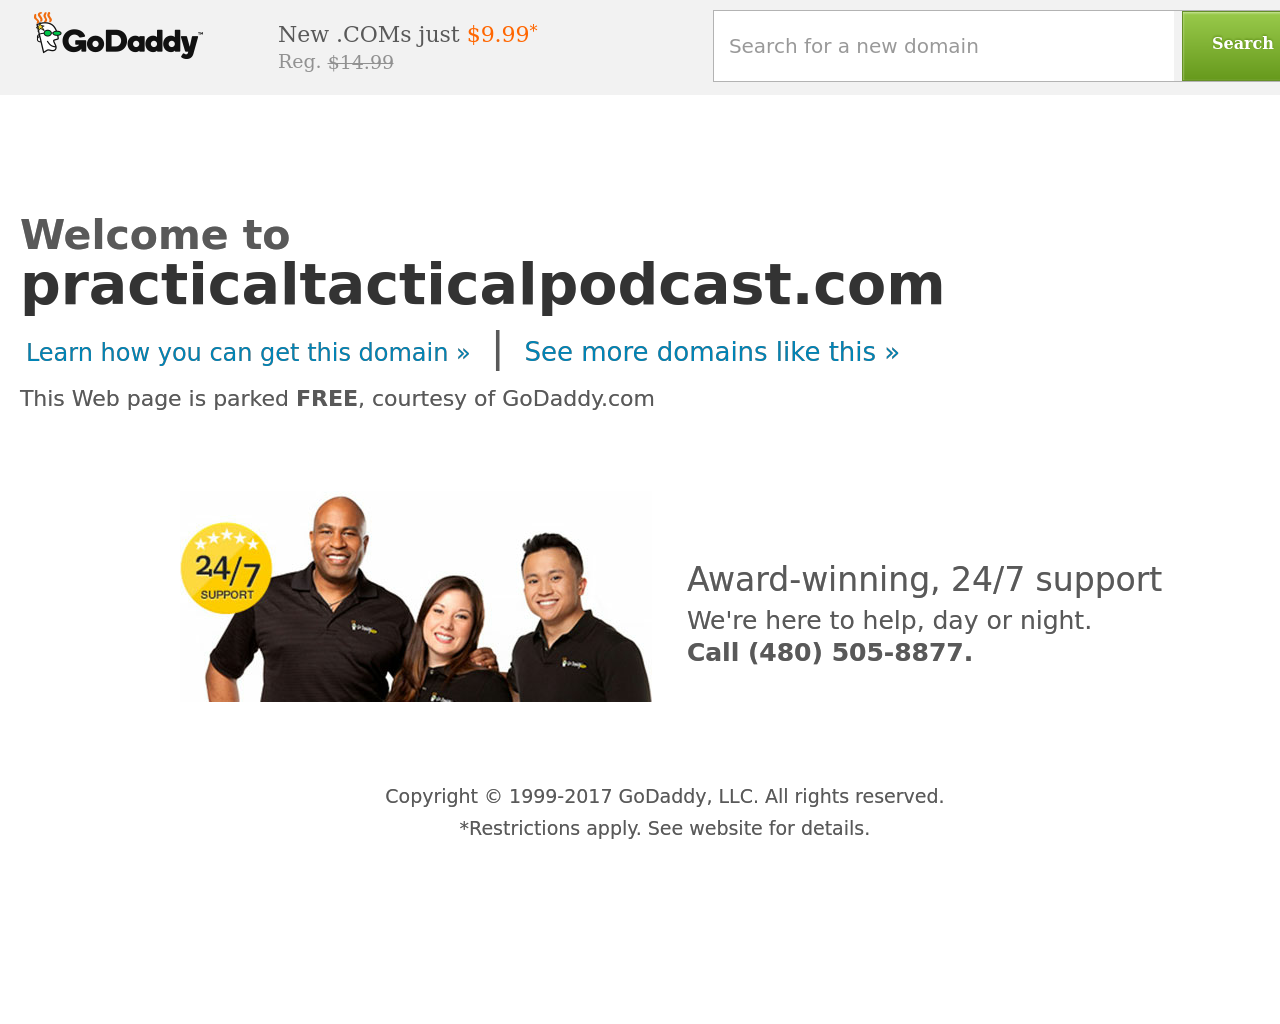 The-Practical-Tactical-Podcast-Advertising-Reviews-Pricing